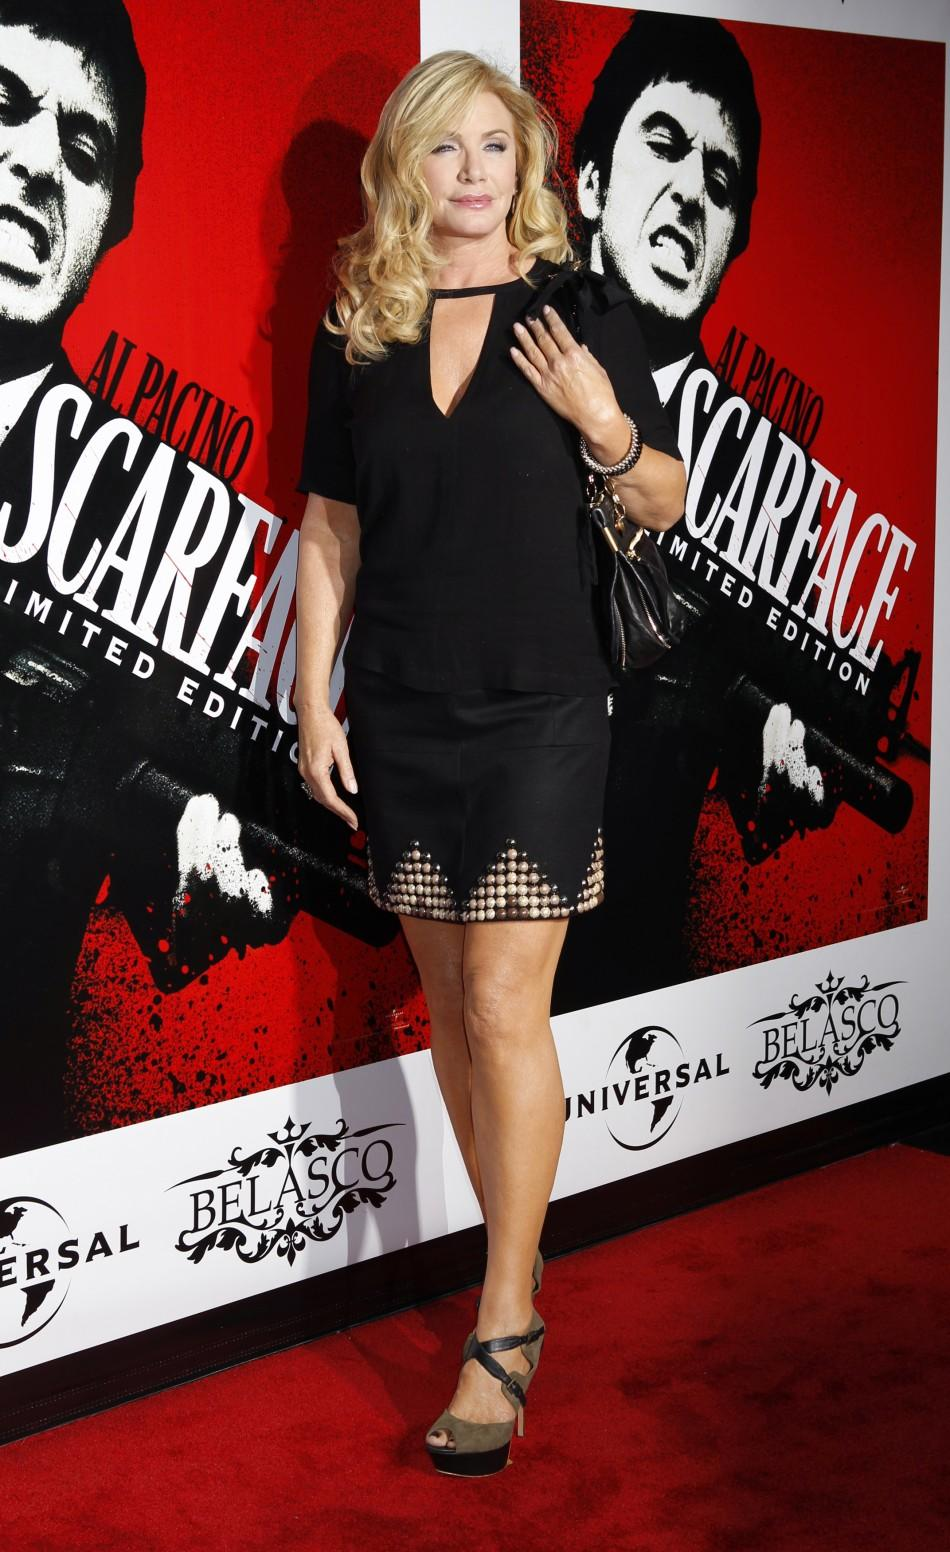 Canadian actress Shannon Tweed